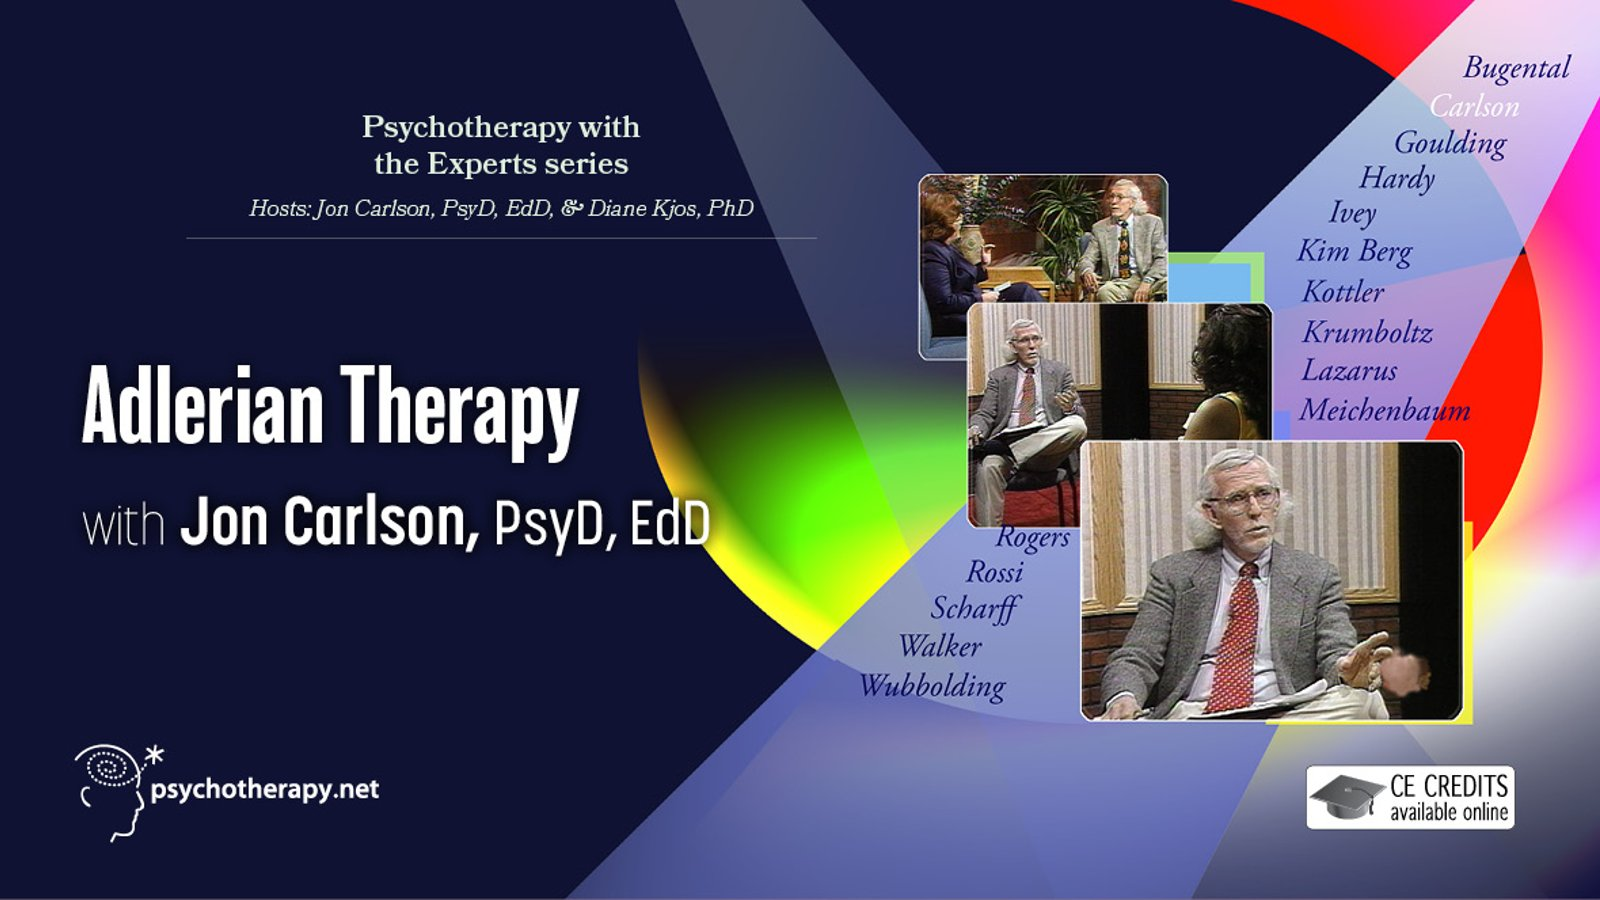 Adlerian Therapy - With Jon Carlson